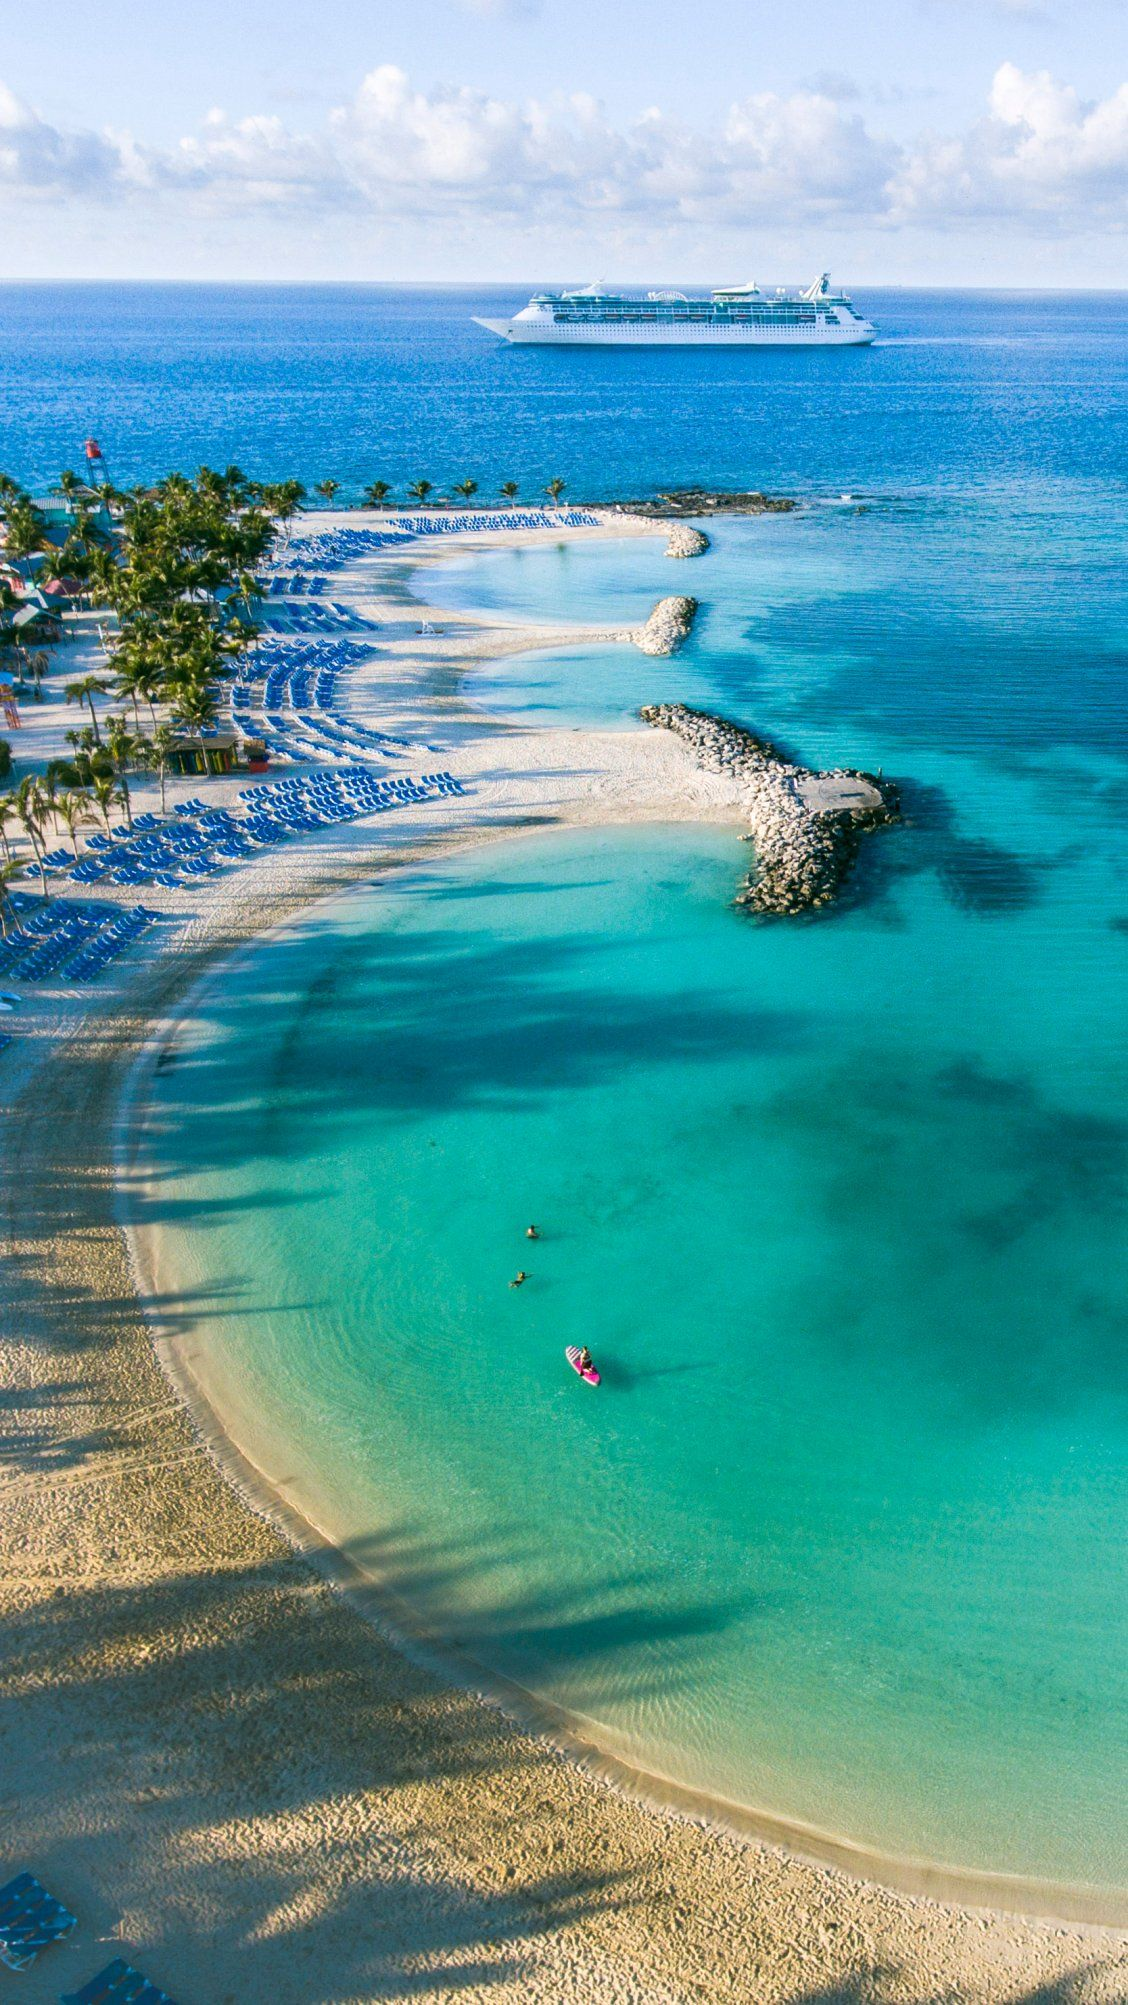 cococay bahamas what would you do with 8 hours in cococay three